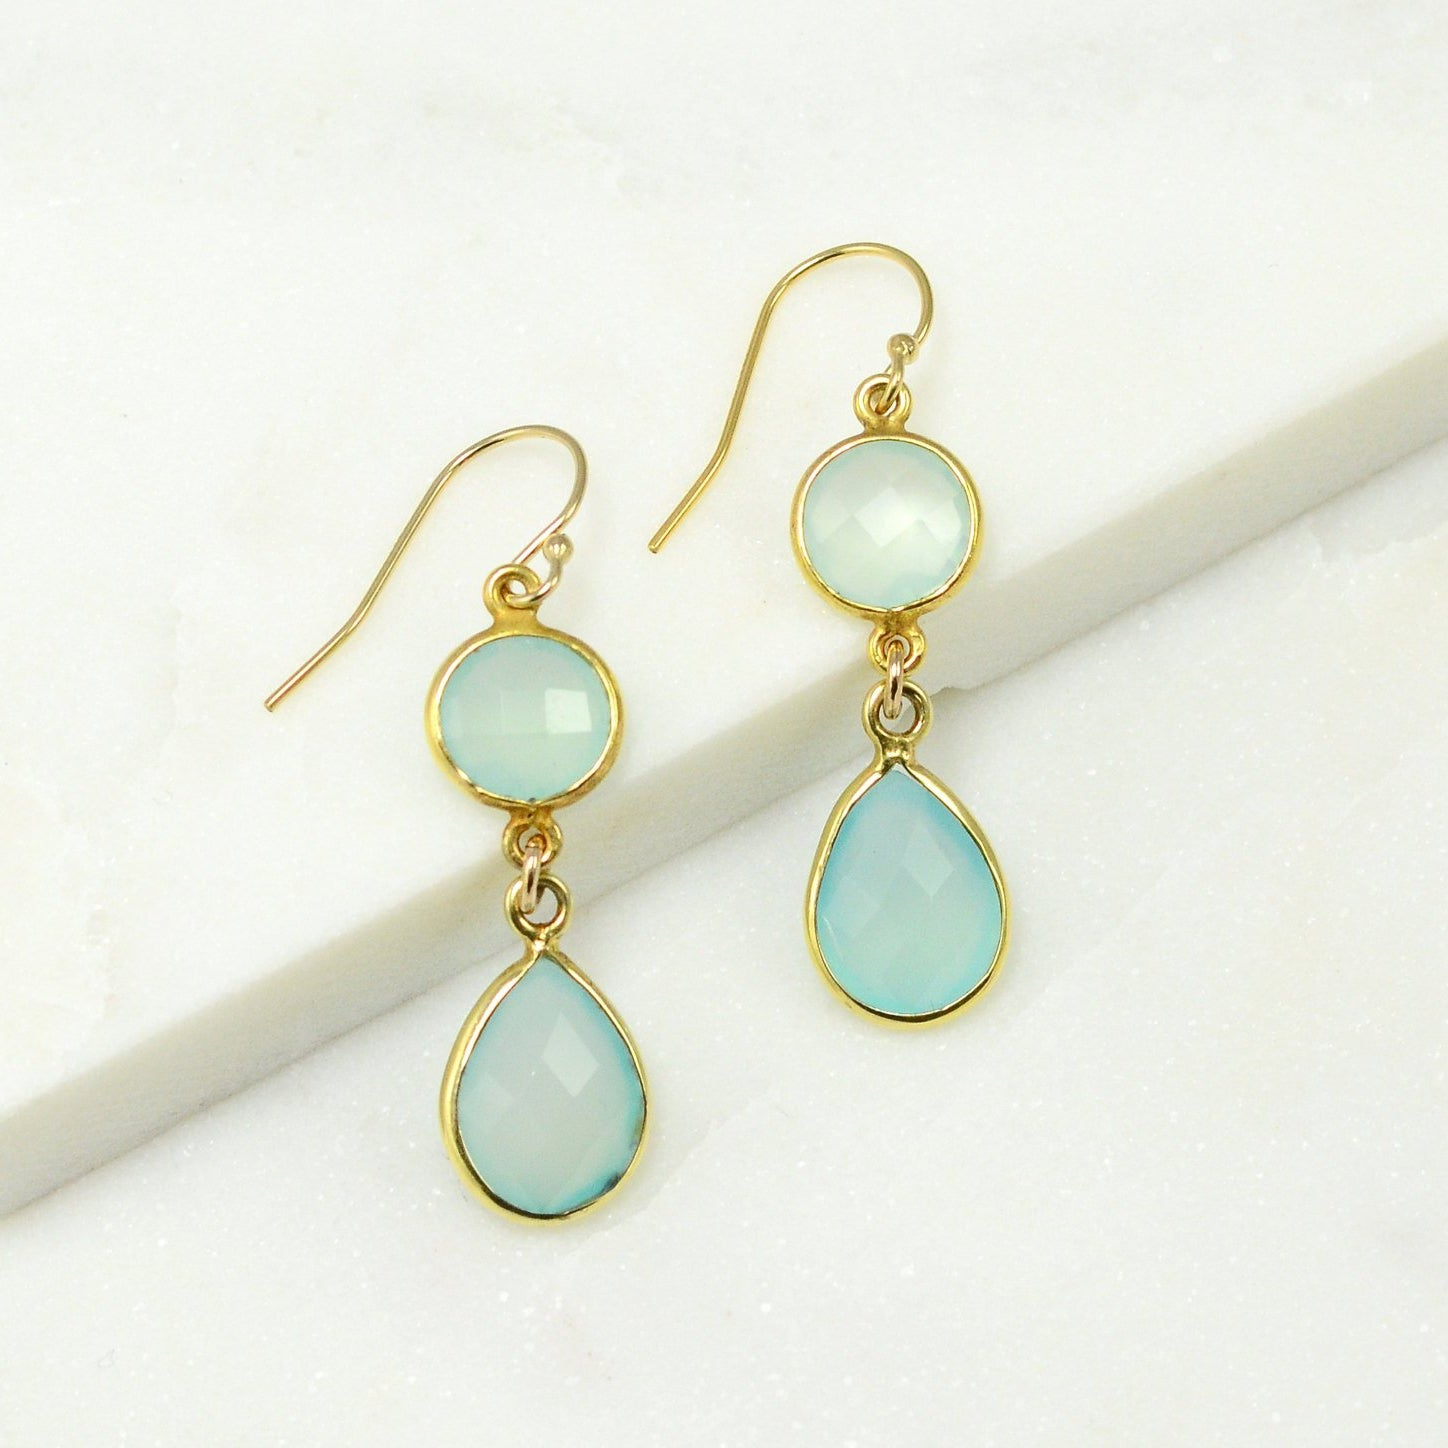 Aqua Chalcedony Earring - Color Gemstone Earrings - Dangle and Drop Earring - Two tier earring - Bezel Drop Earrings - Bridesmaid Earrings